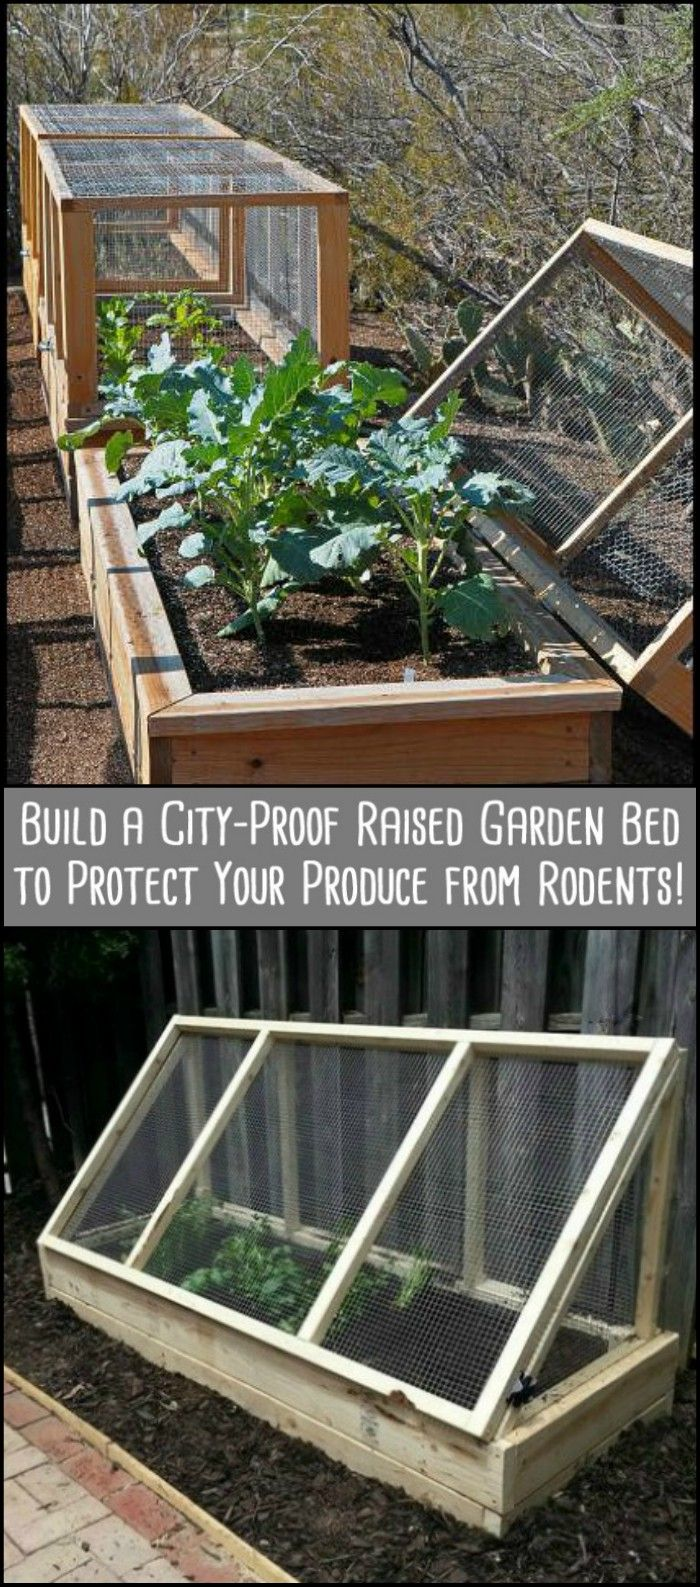 Protect Your Produce from Rodents by Building This City